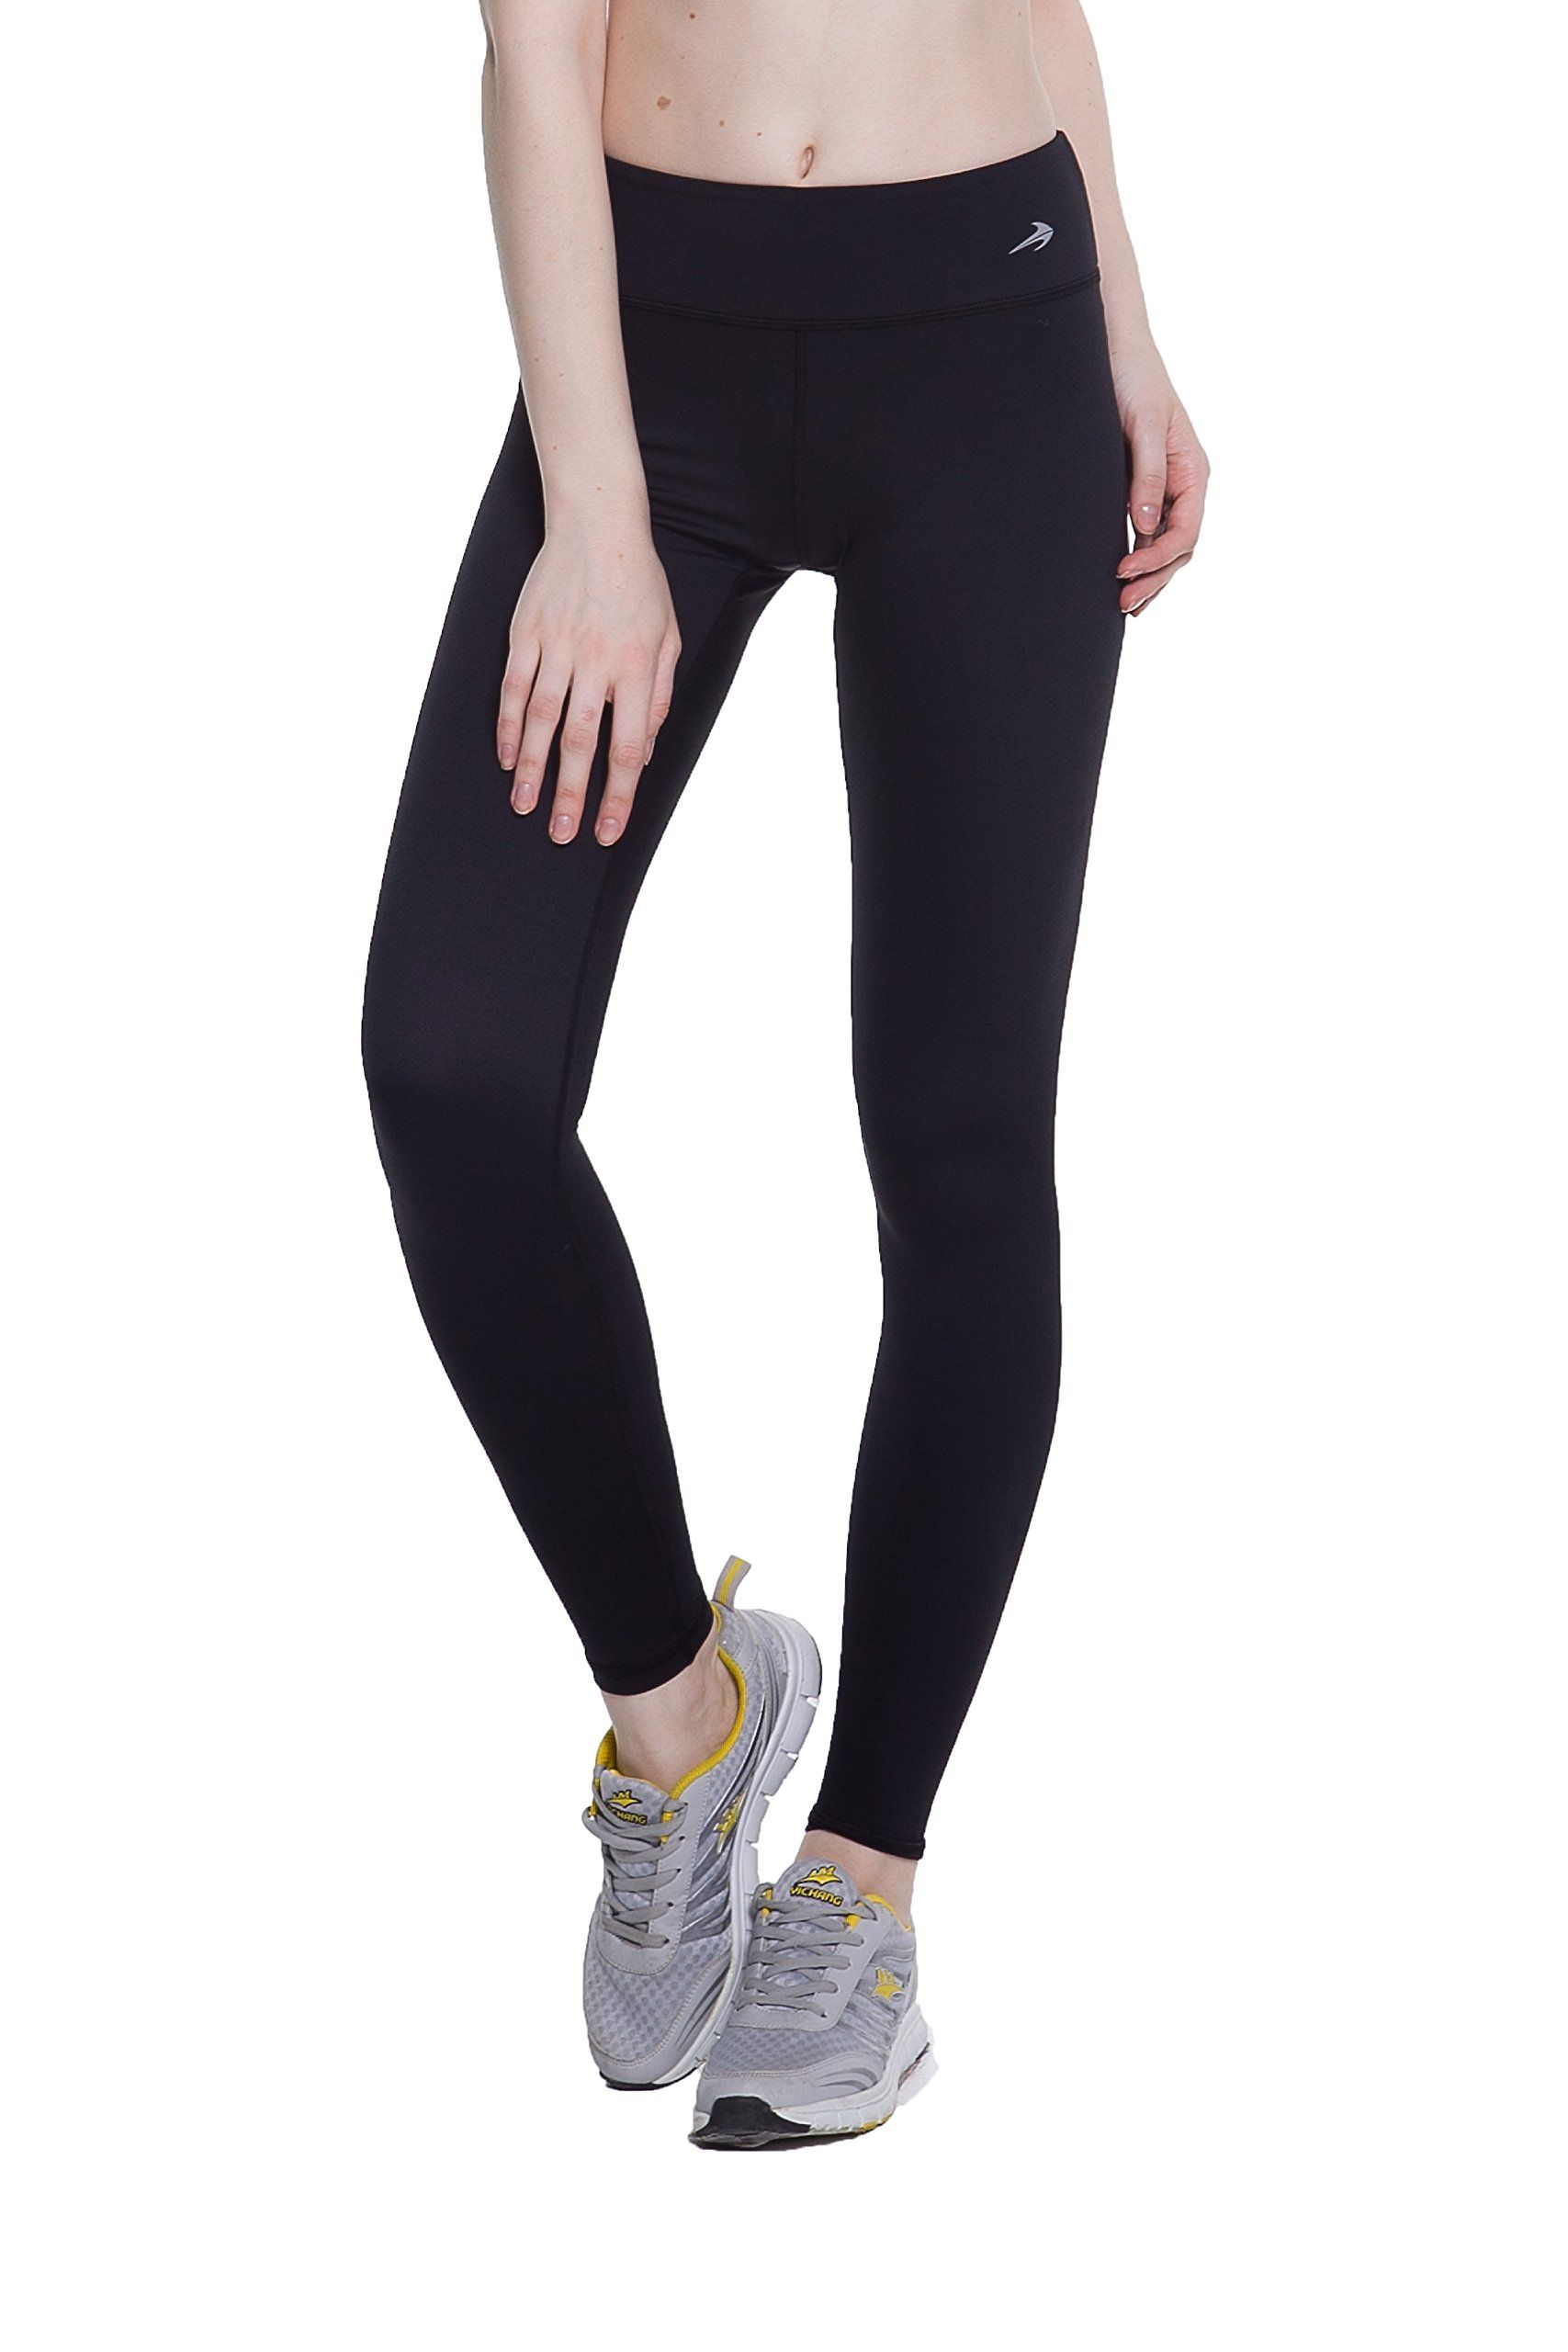 b214855a10 Women's Compression Pants (Black - M) Best Full Leggings Tights for Running,  Yoga